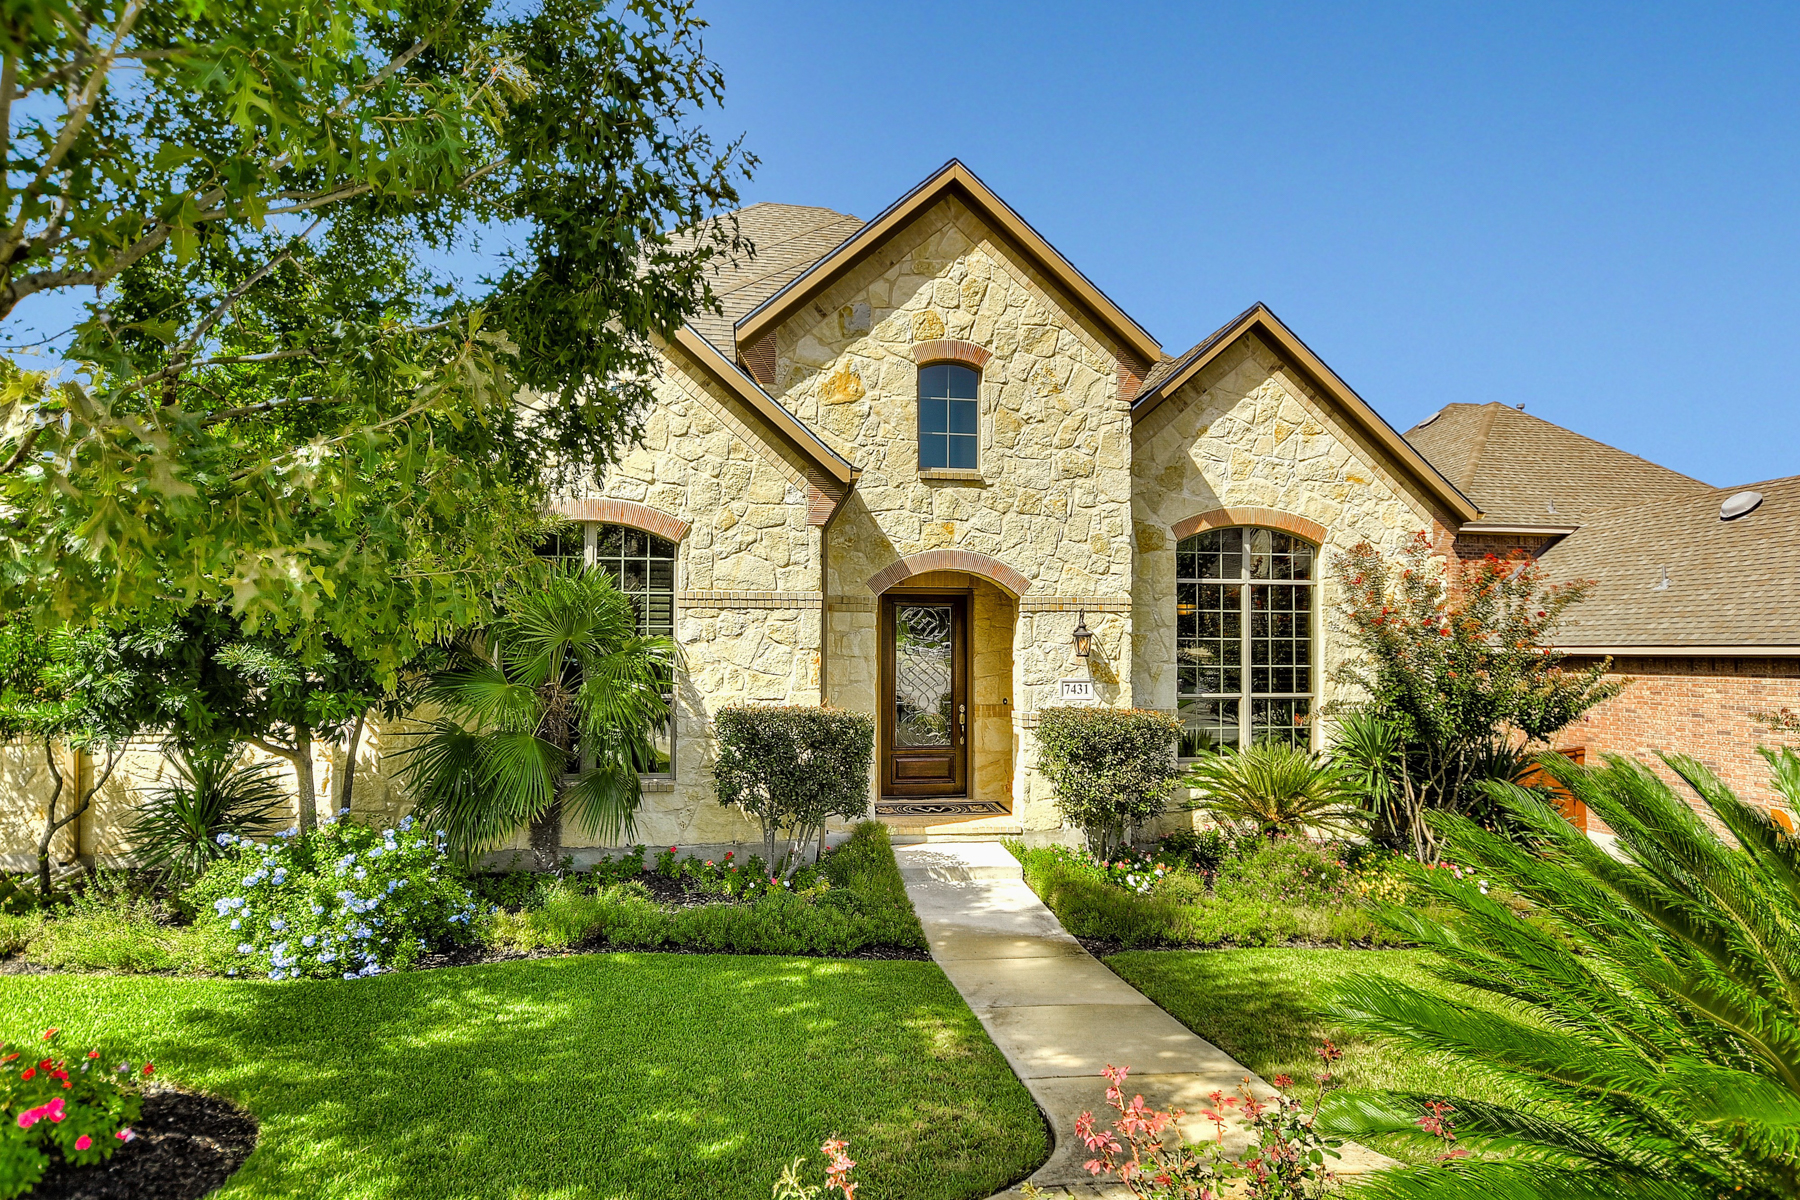 Single Family Home for Sale at Breathtaking Home in Stonewall Estates 7431 Stonewall Hill Stonewall Estates, San Antonio, Texas, 78256 United States